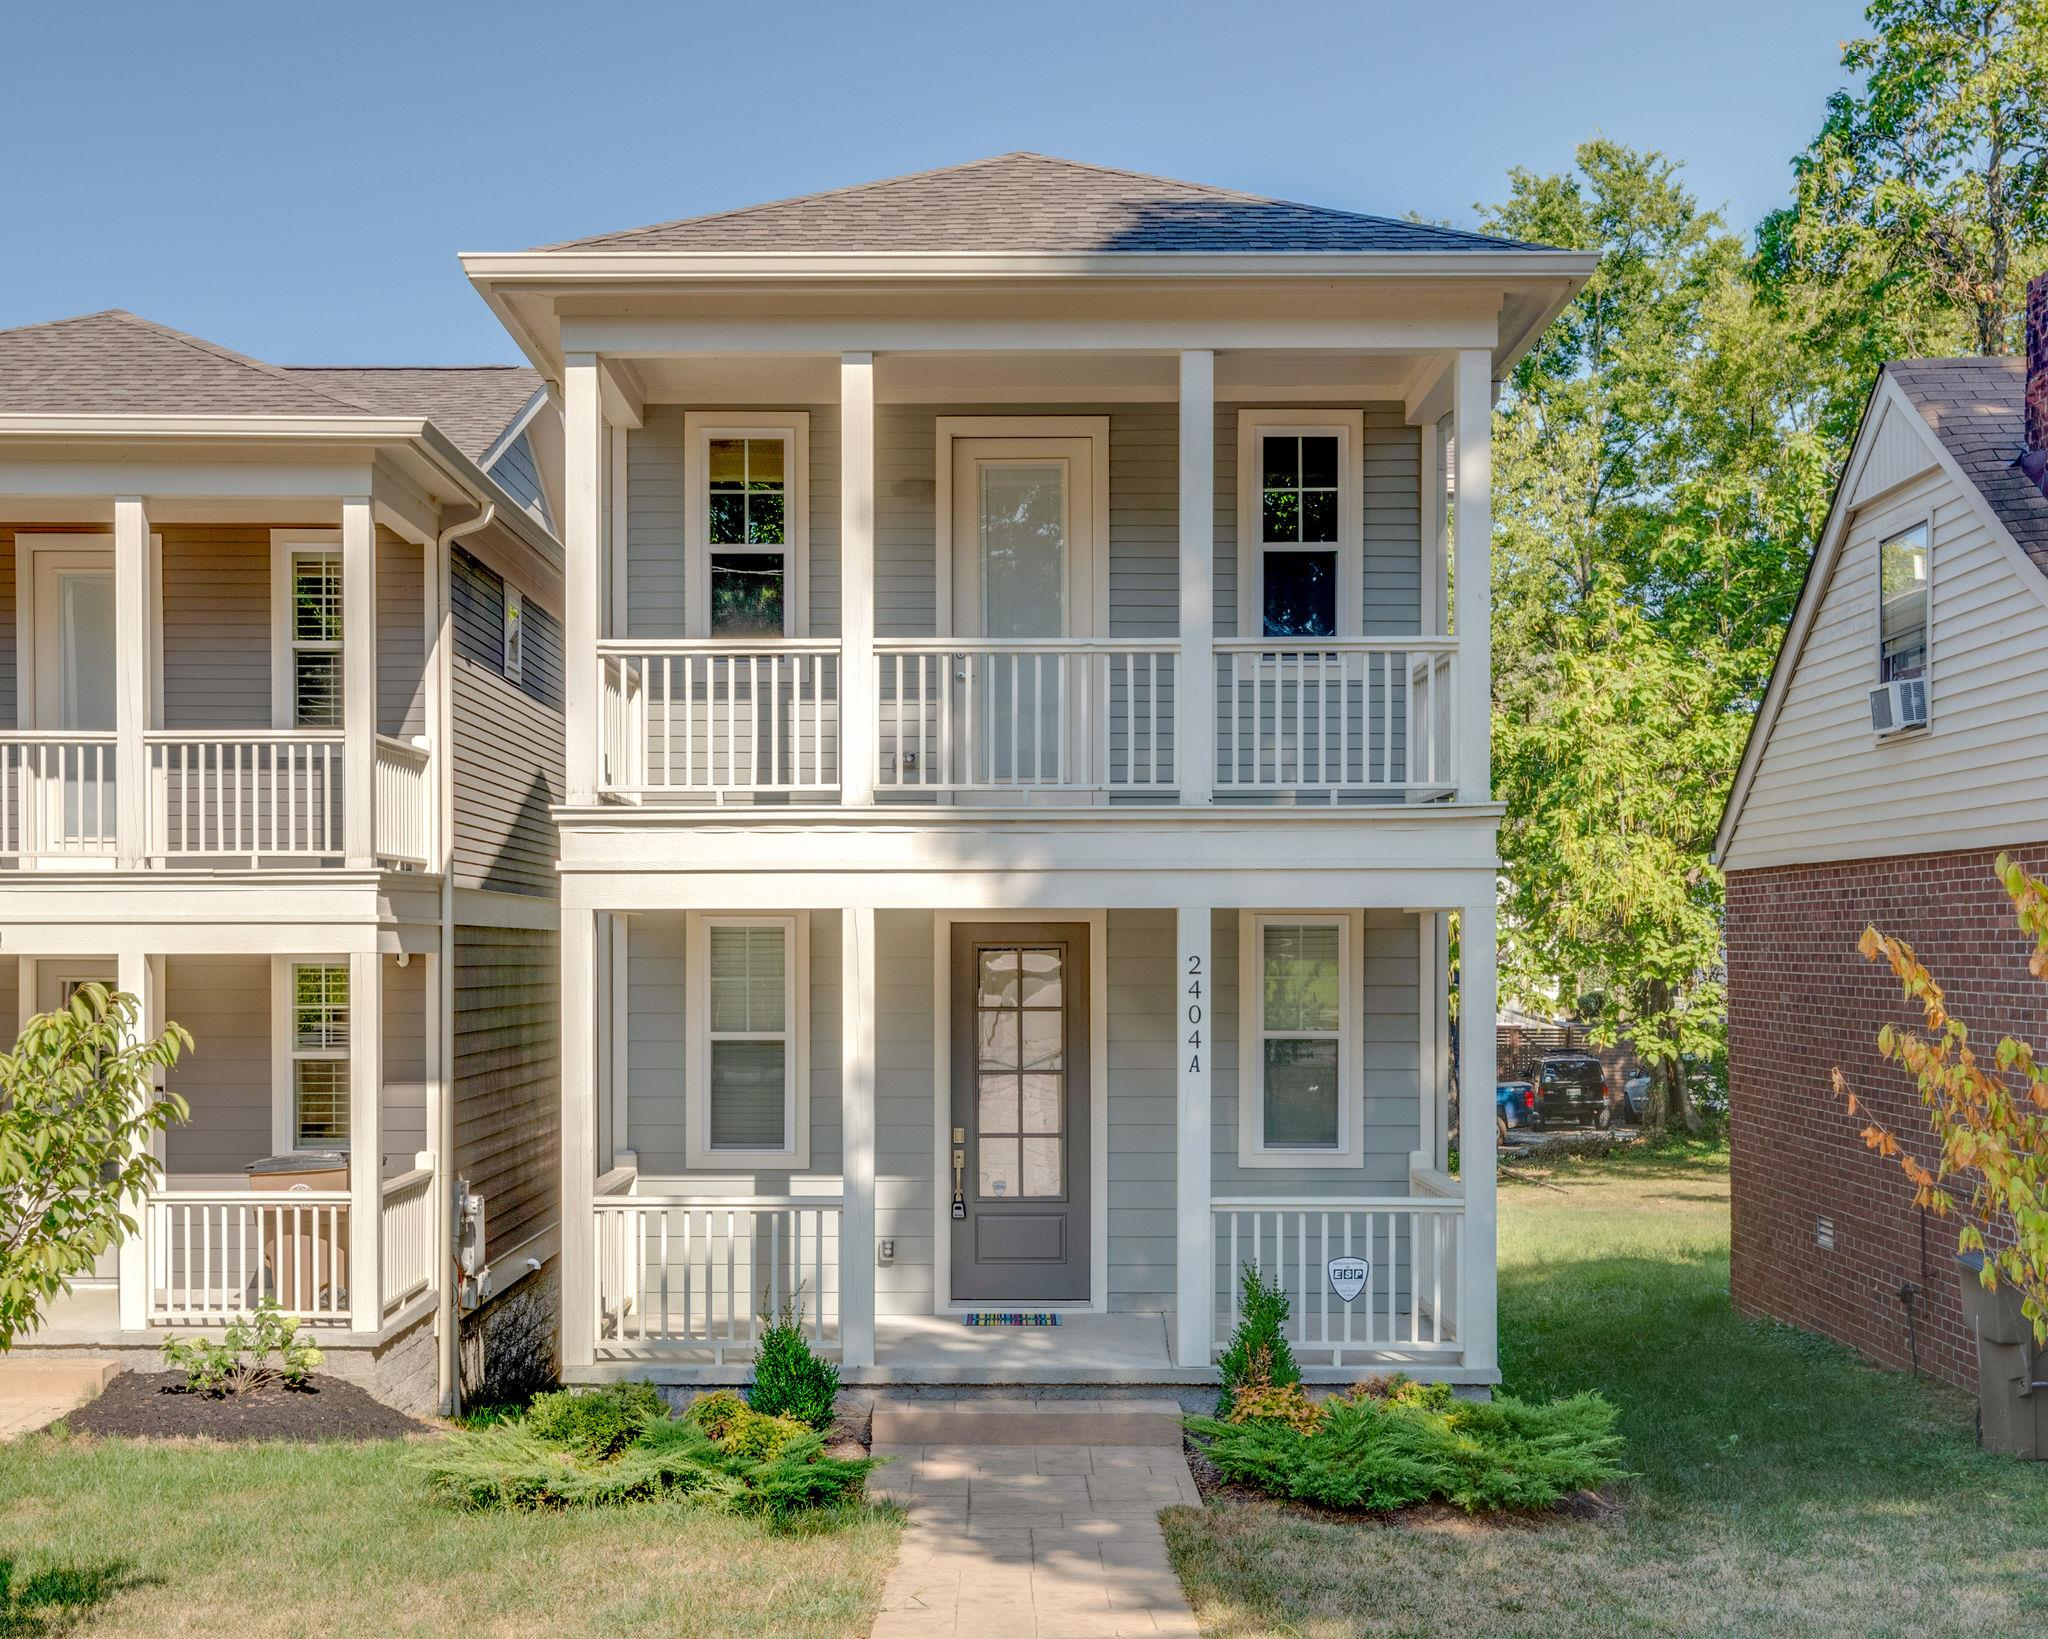 2404 A 14th Ave , N, Nashville, TN 37208 - Nashville, TN real estate listing